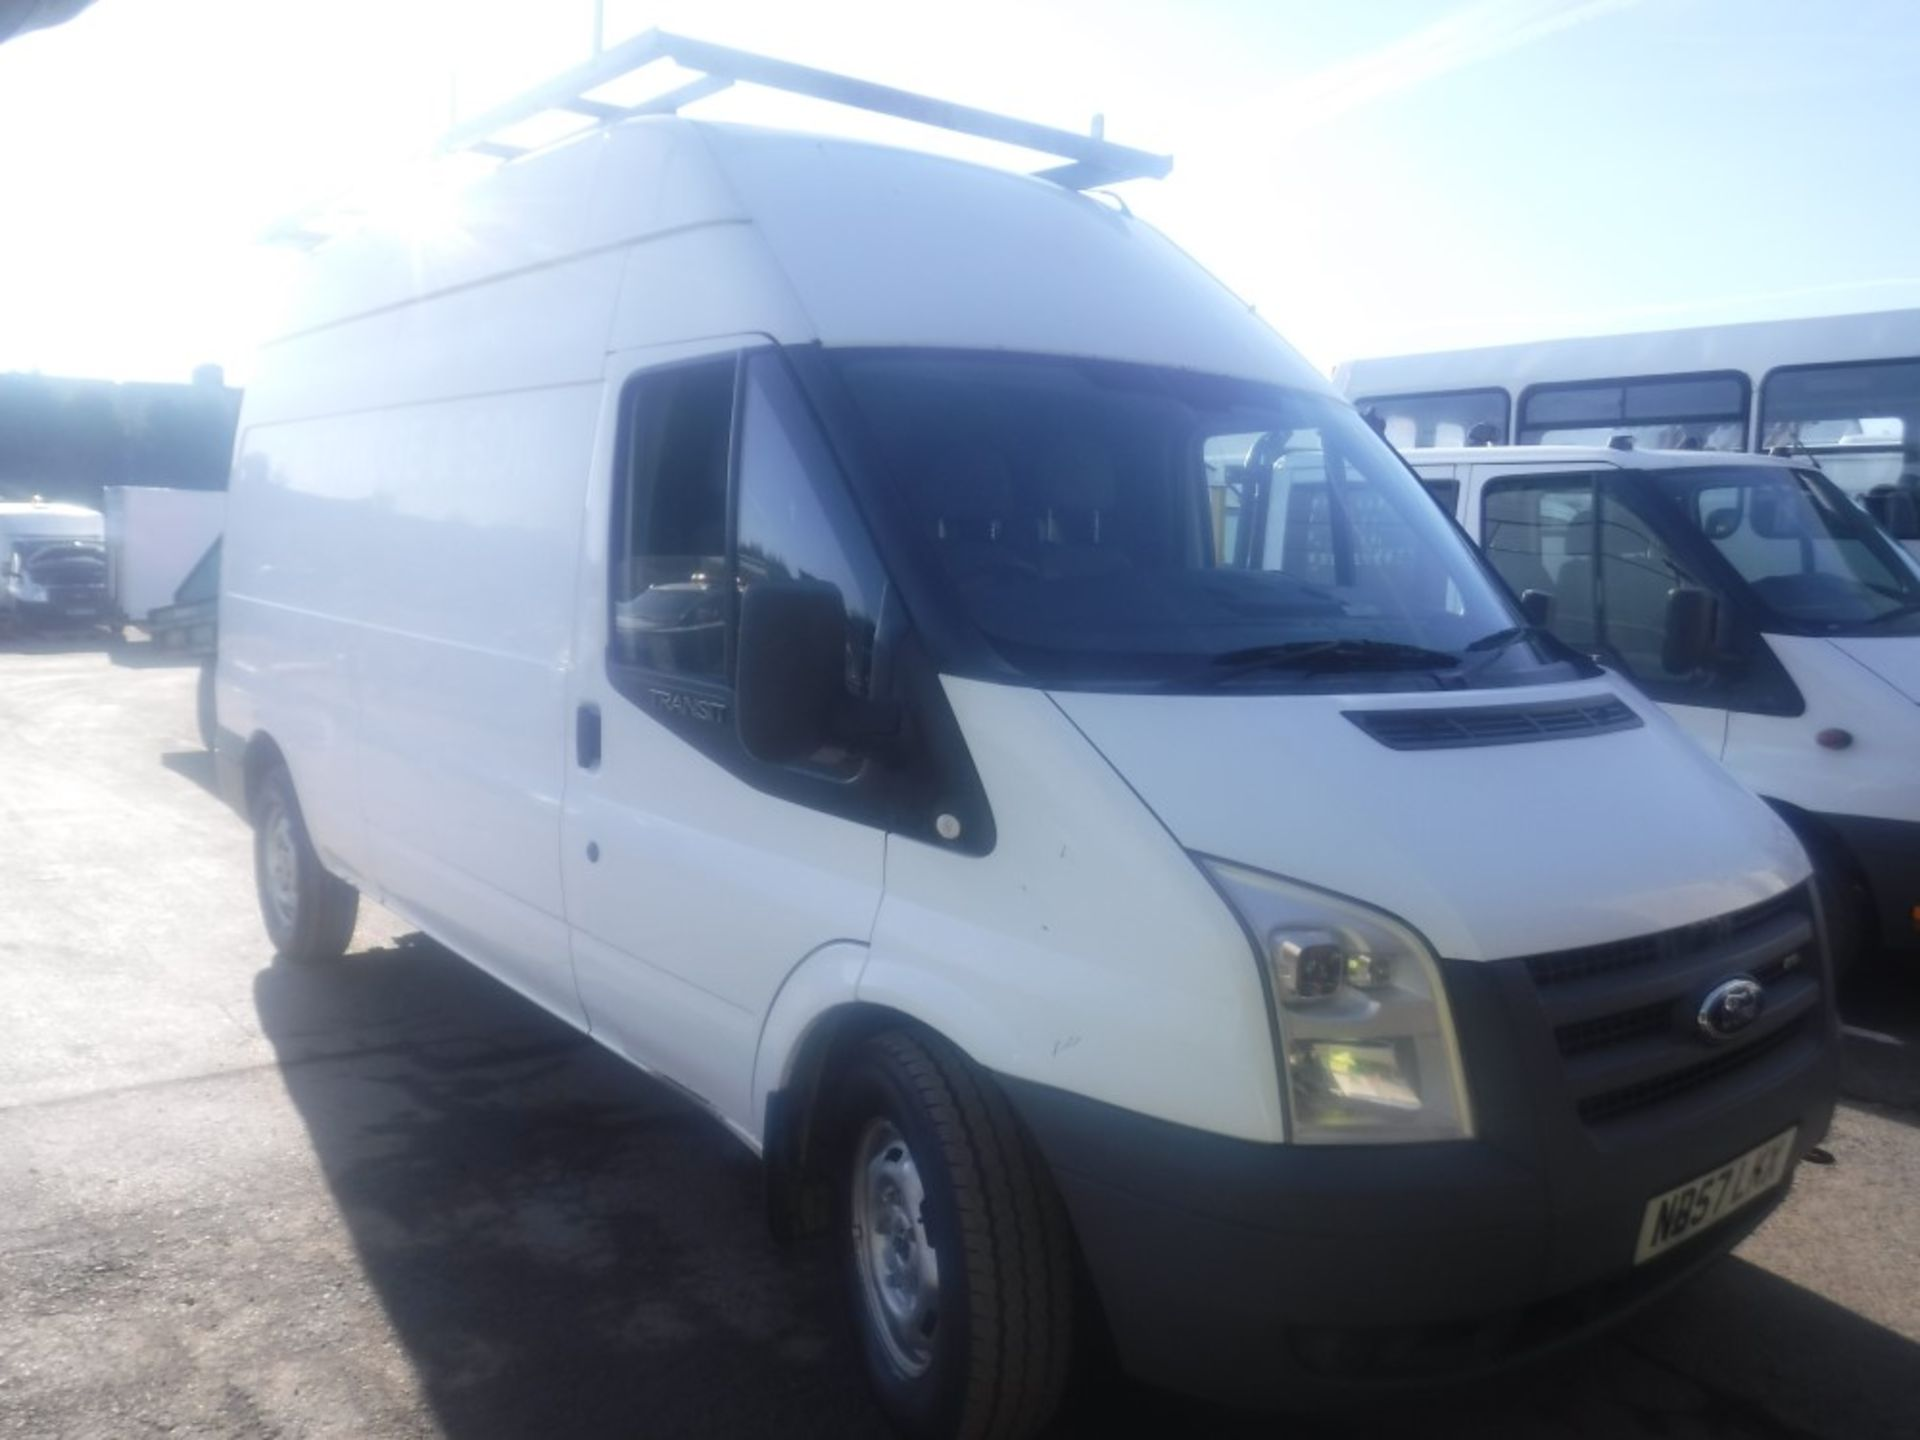 Lot 13 - 57 reg FORD TRANSIT 100 T350L LWB, 1ST REG 12/07, 90223M NOT WARRANTED, V5 HERE, 3 FORMER KEEPERS [